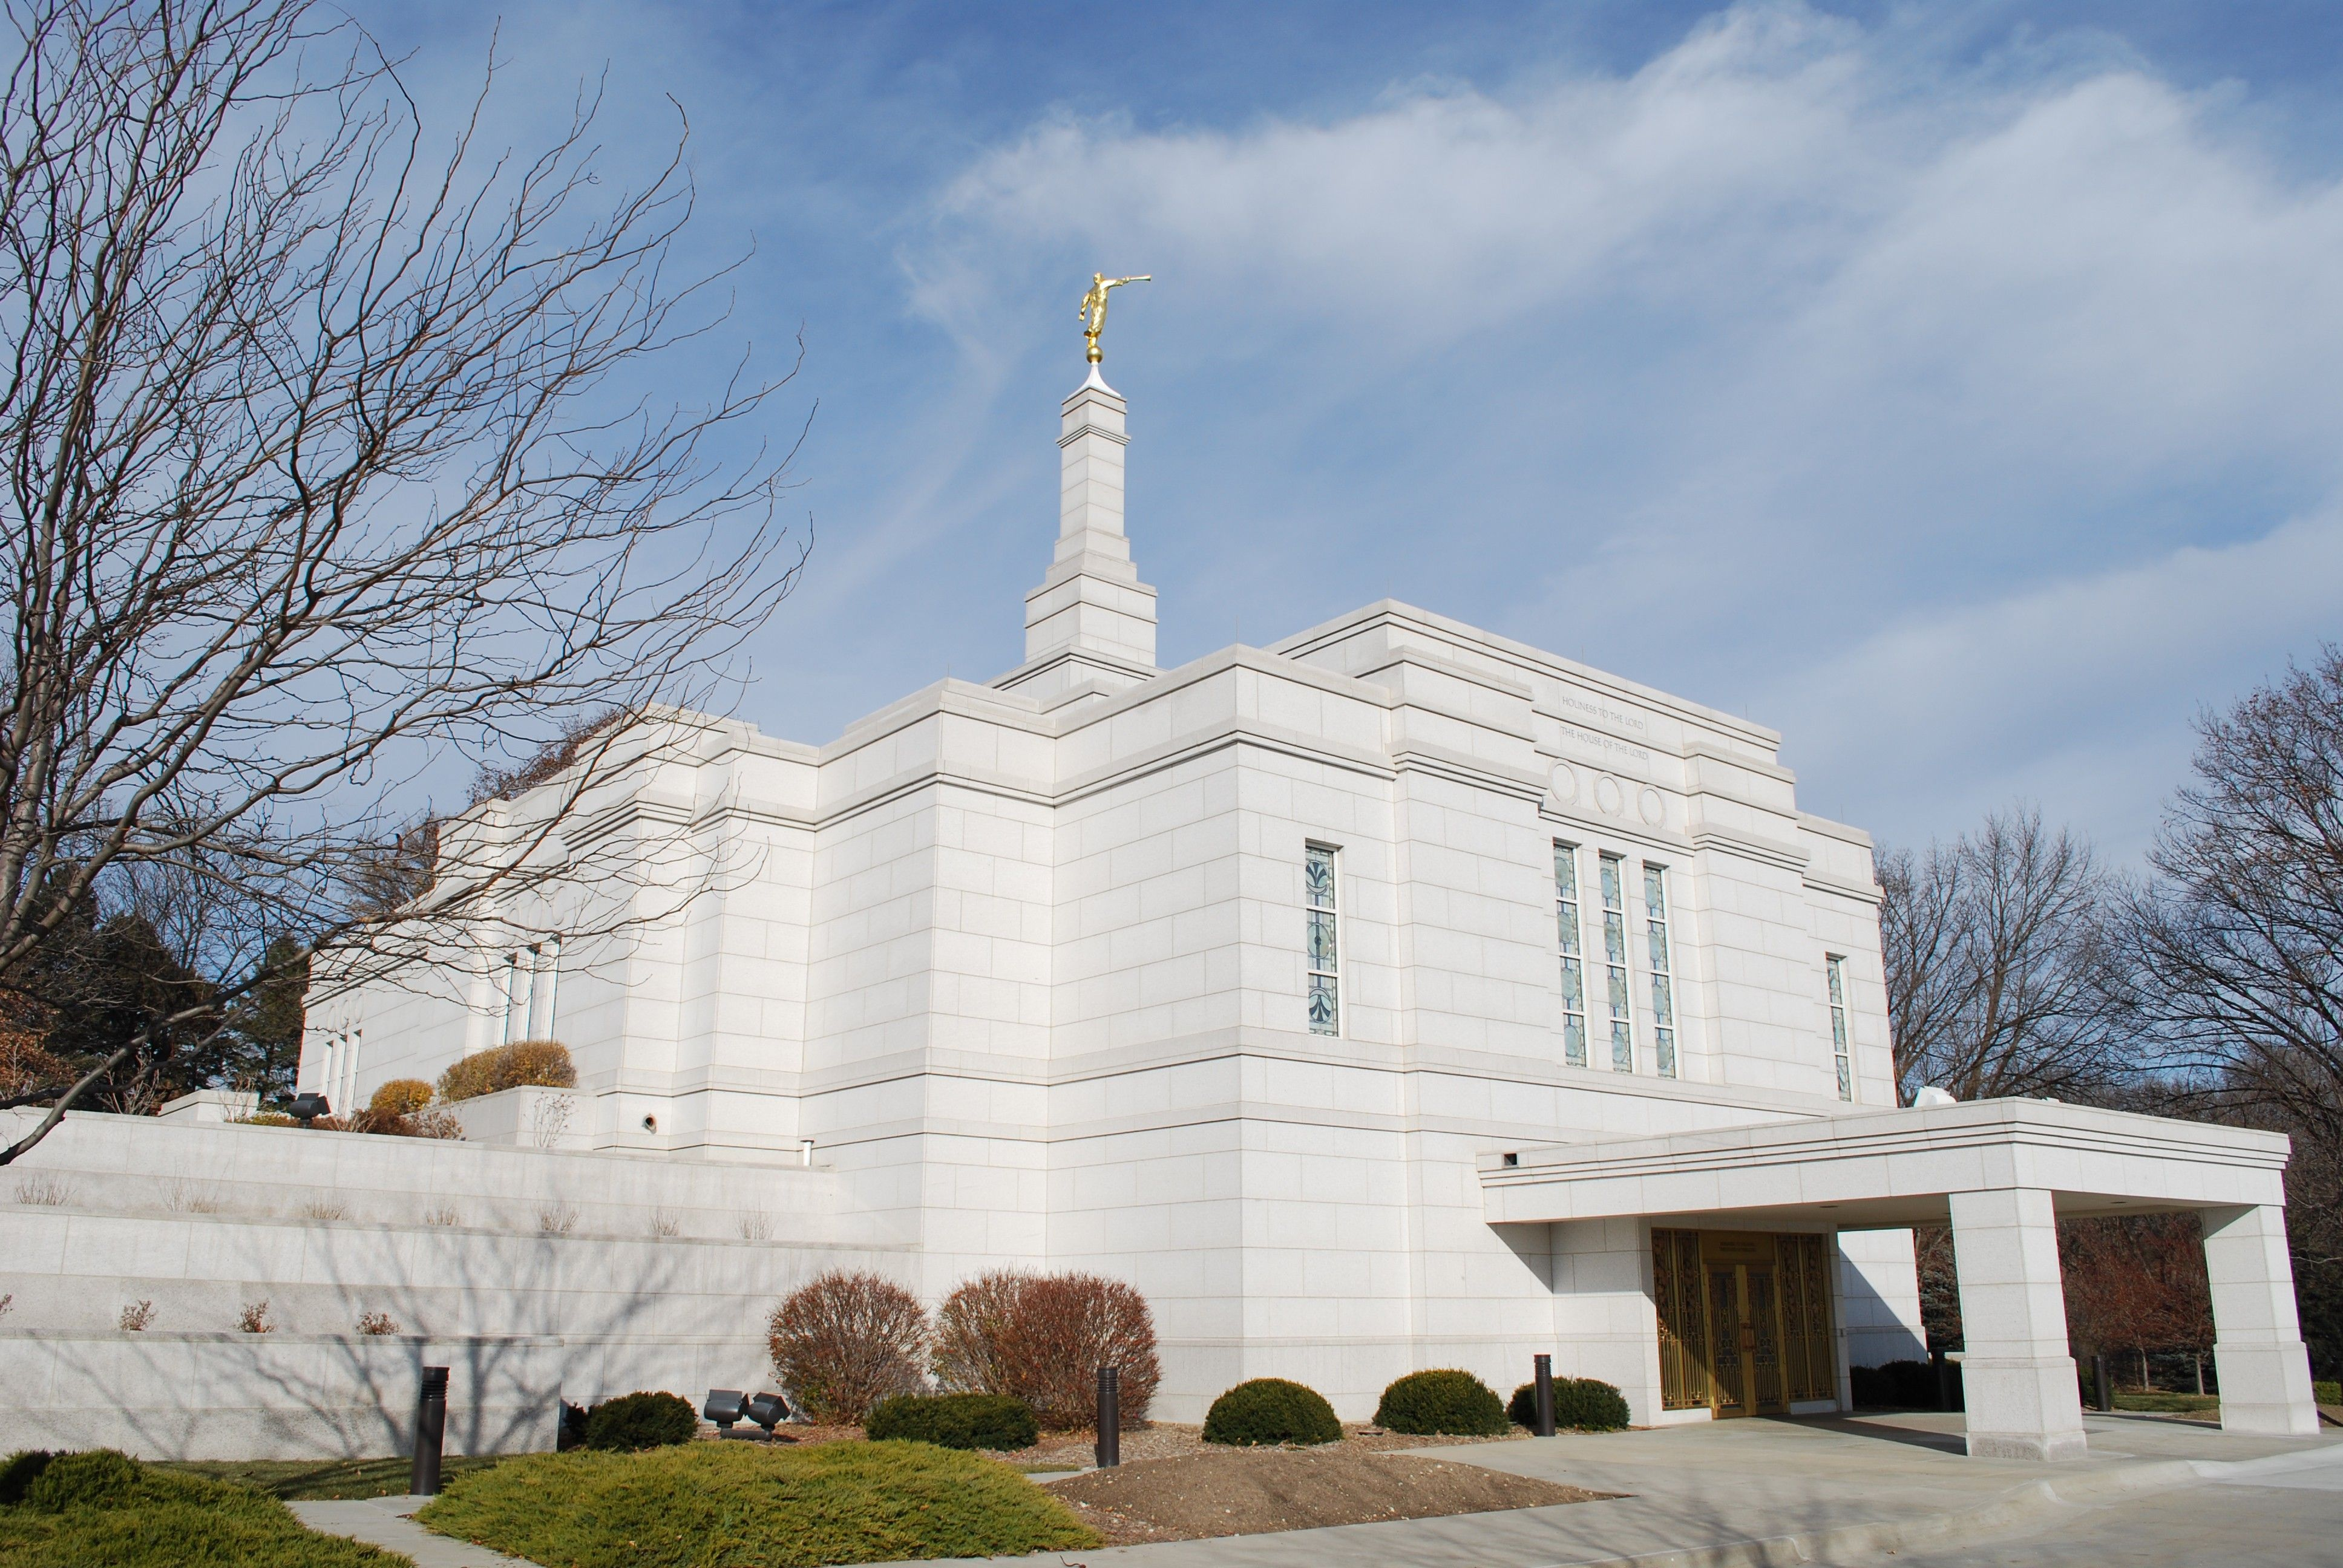 The entire Winter Quarters Nebraska Temple, including the entrance and scenery.